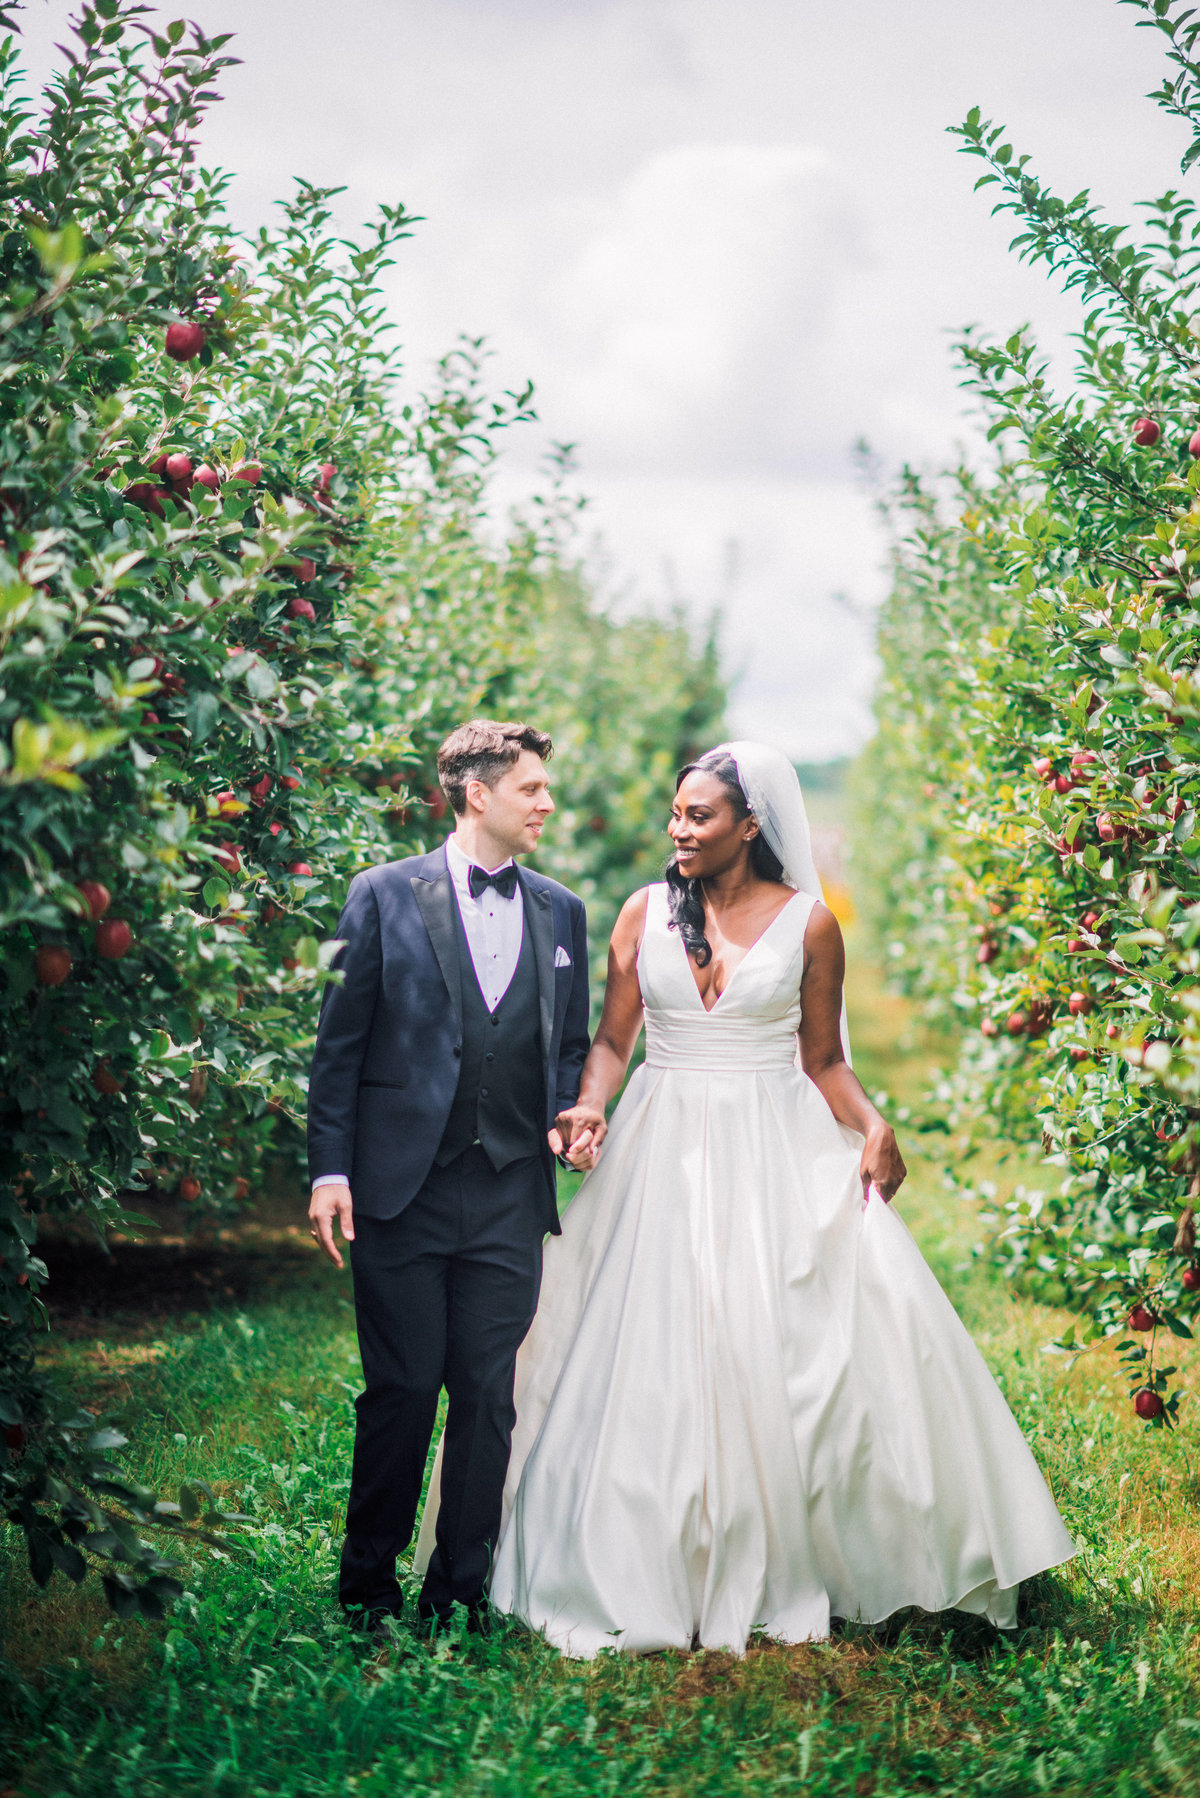 bride and groom walk towards camera in an apple orchard